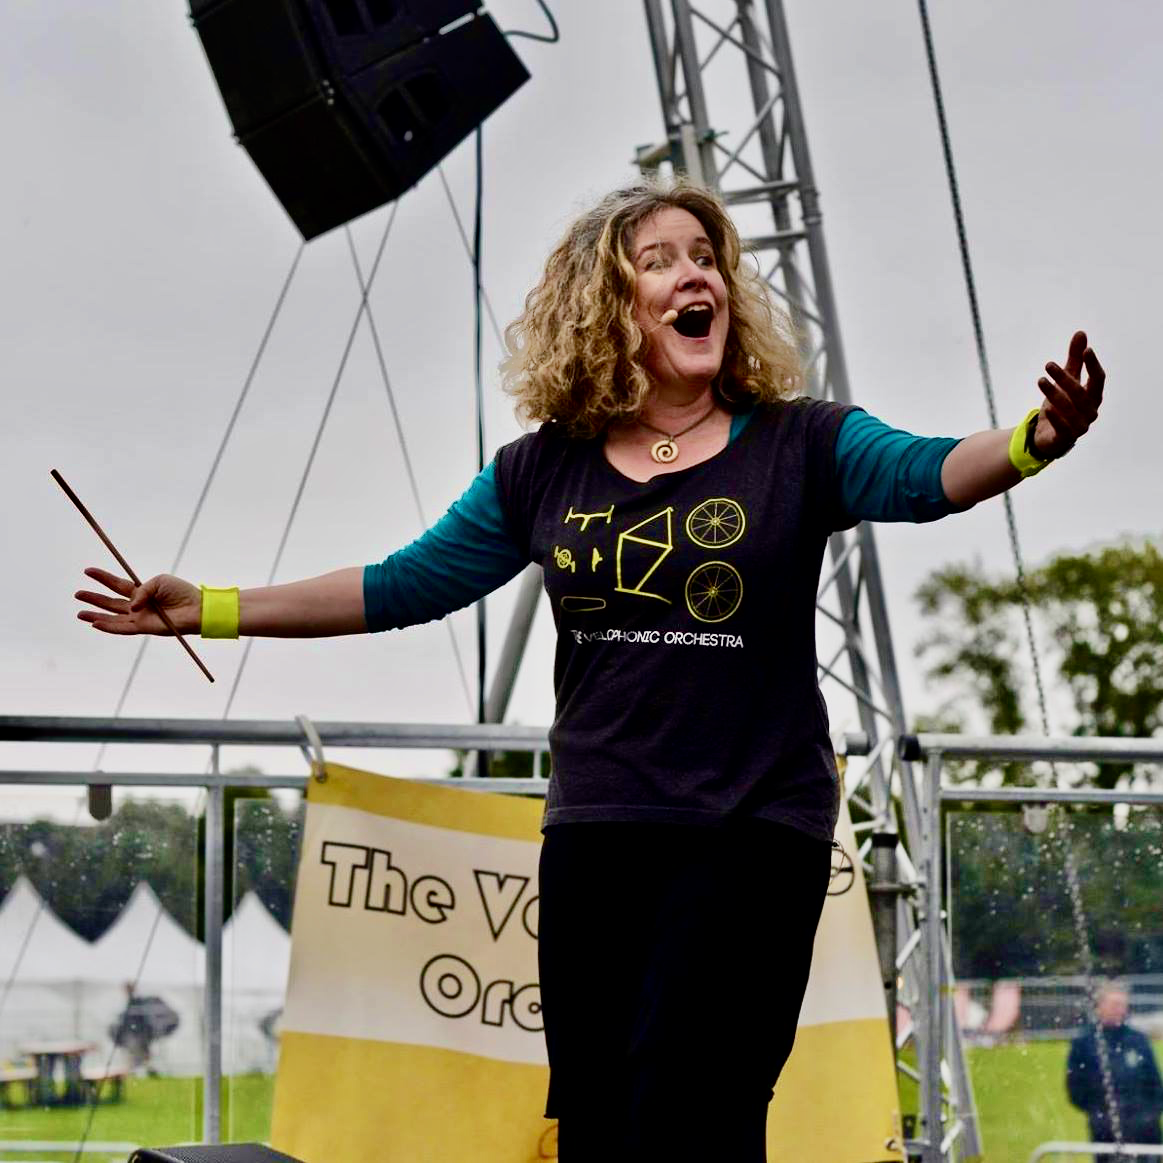 Jane Bentley on stage performing at an outdoor event.